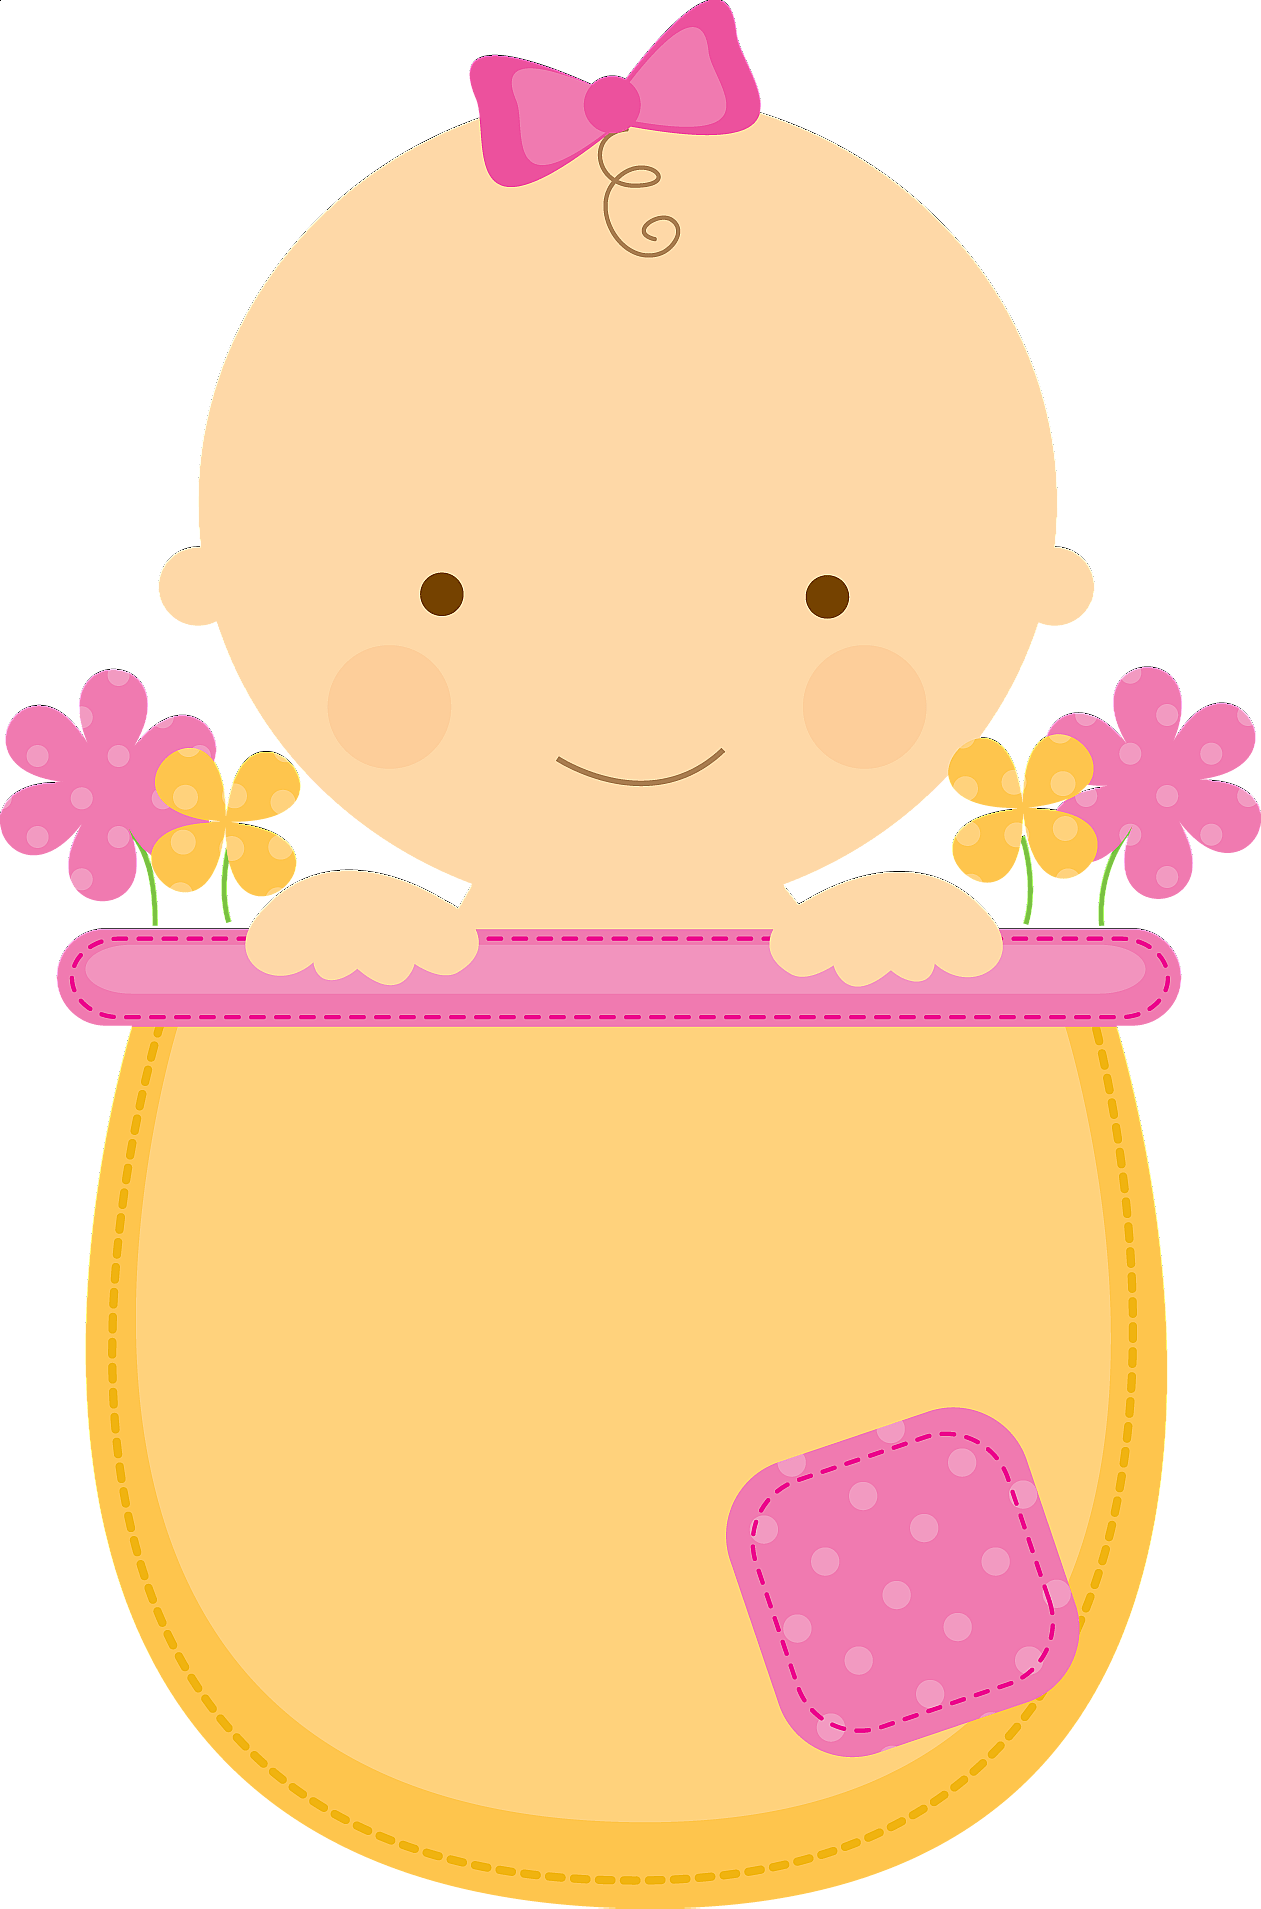 Baby Stroller Pram Library Of Baby Flower Clip Art Royalty Free Download Png